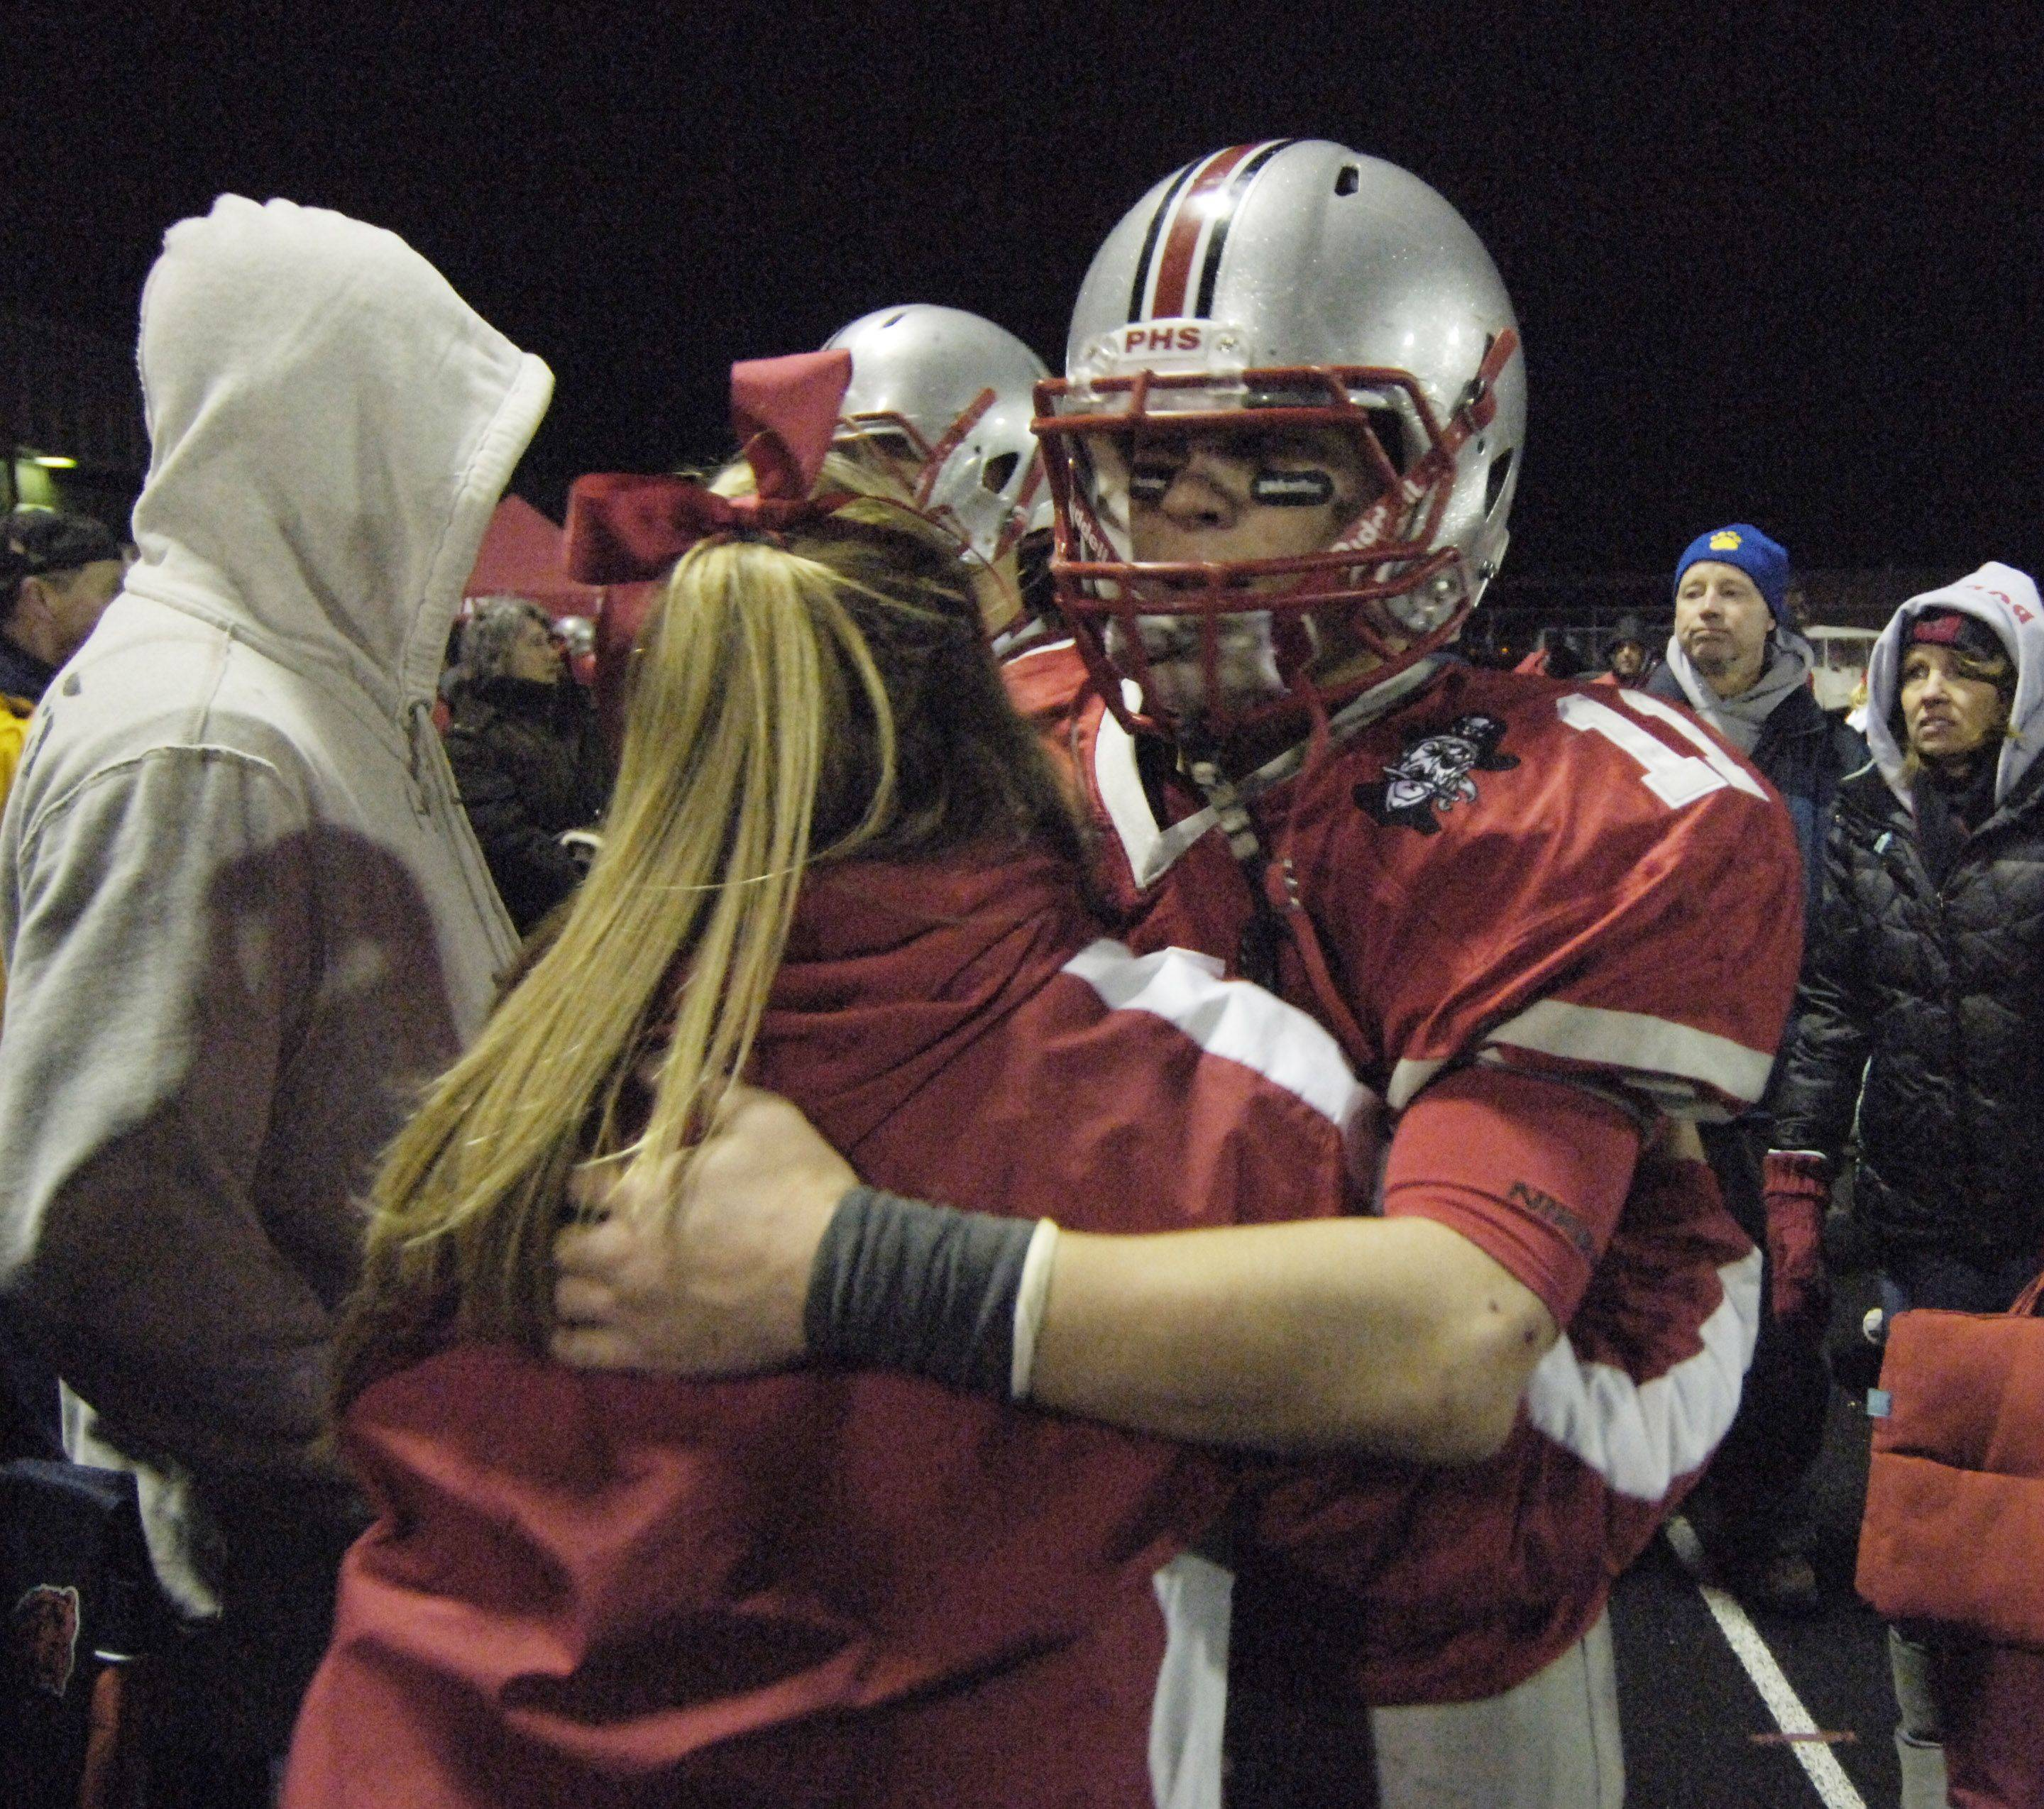 Palatine fans line up to hug Palatine quarterback Cody Bobbit following Saturday night's loss to Loyola Academy.